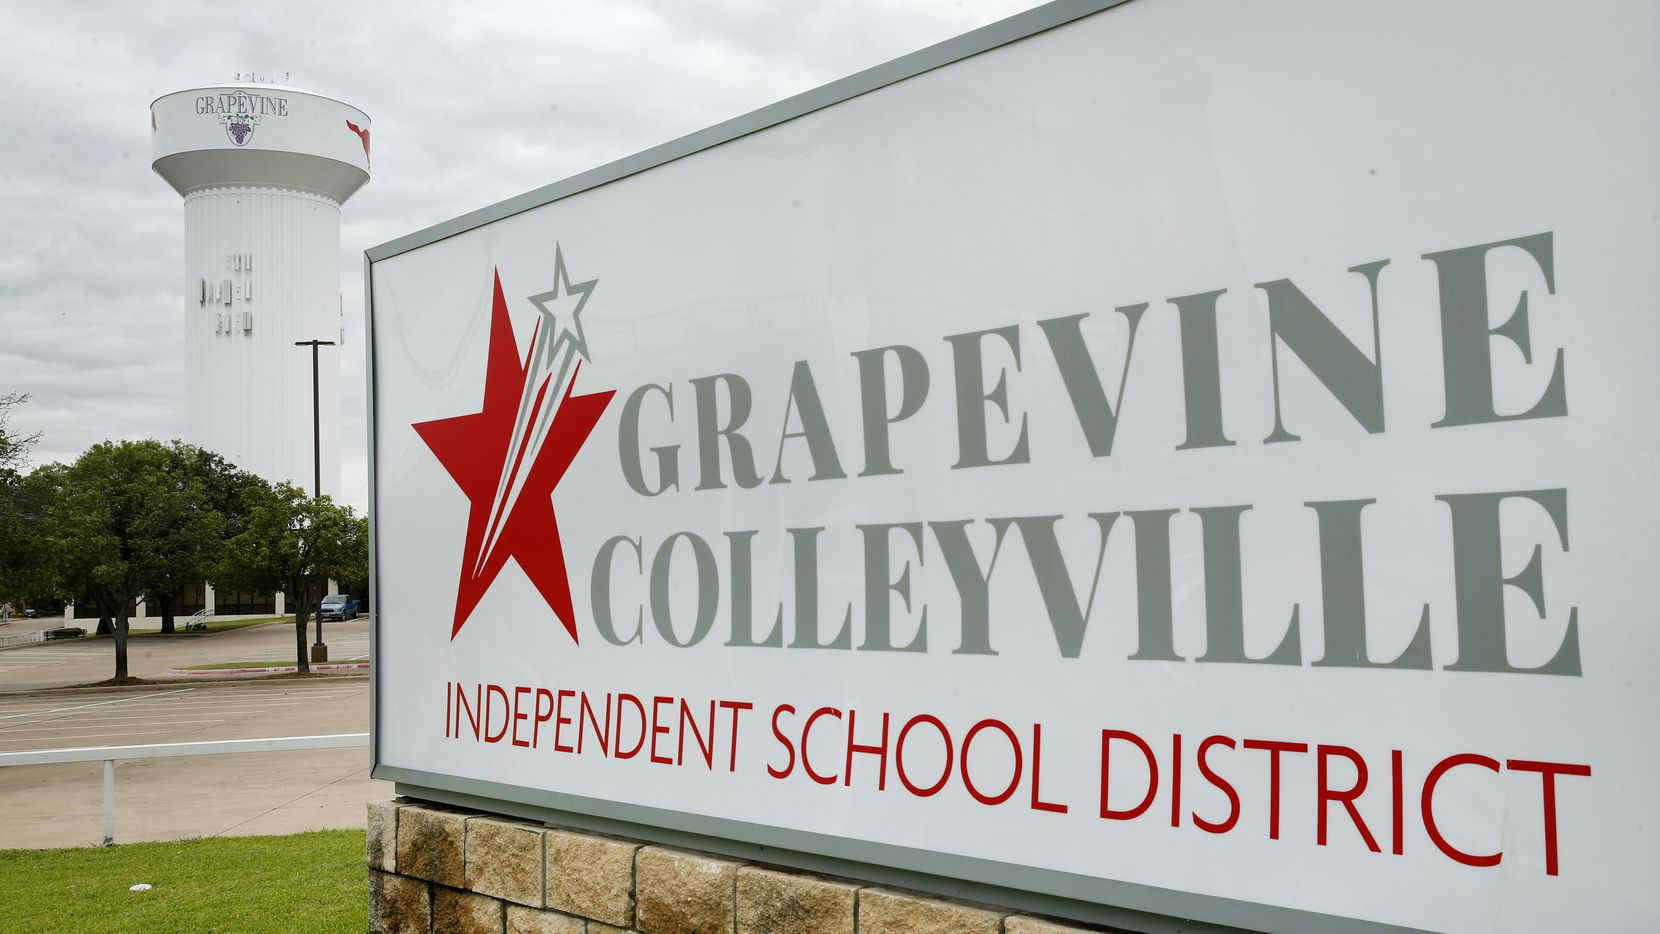 The Grapevine-Colleyville ISD sign is pictured before a Grapevine, Texas water tower, Tuesday, June 23, 2020.